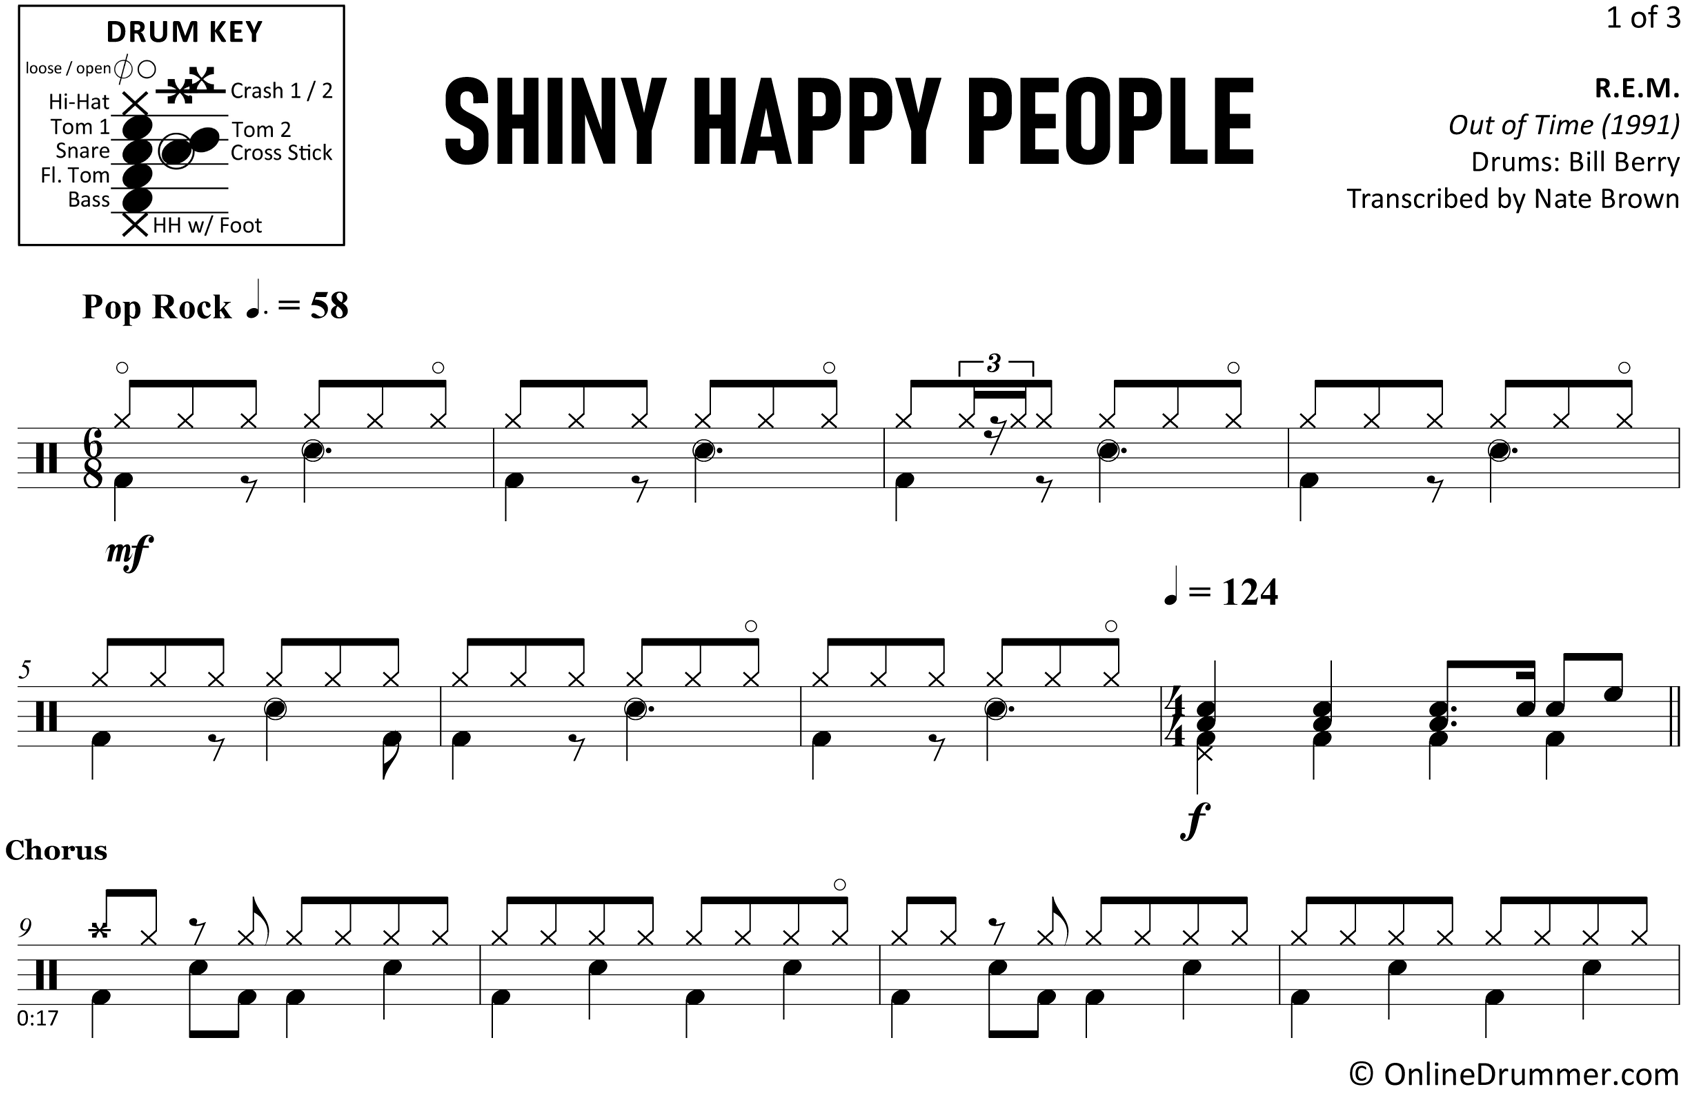 Shiny Happy People - R.E.M. - Drum Sheet Music